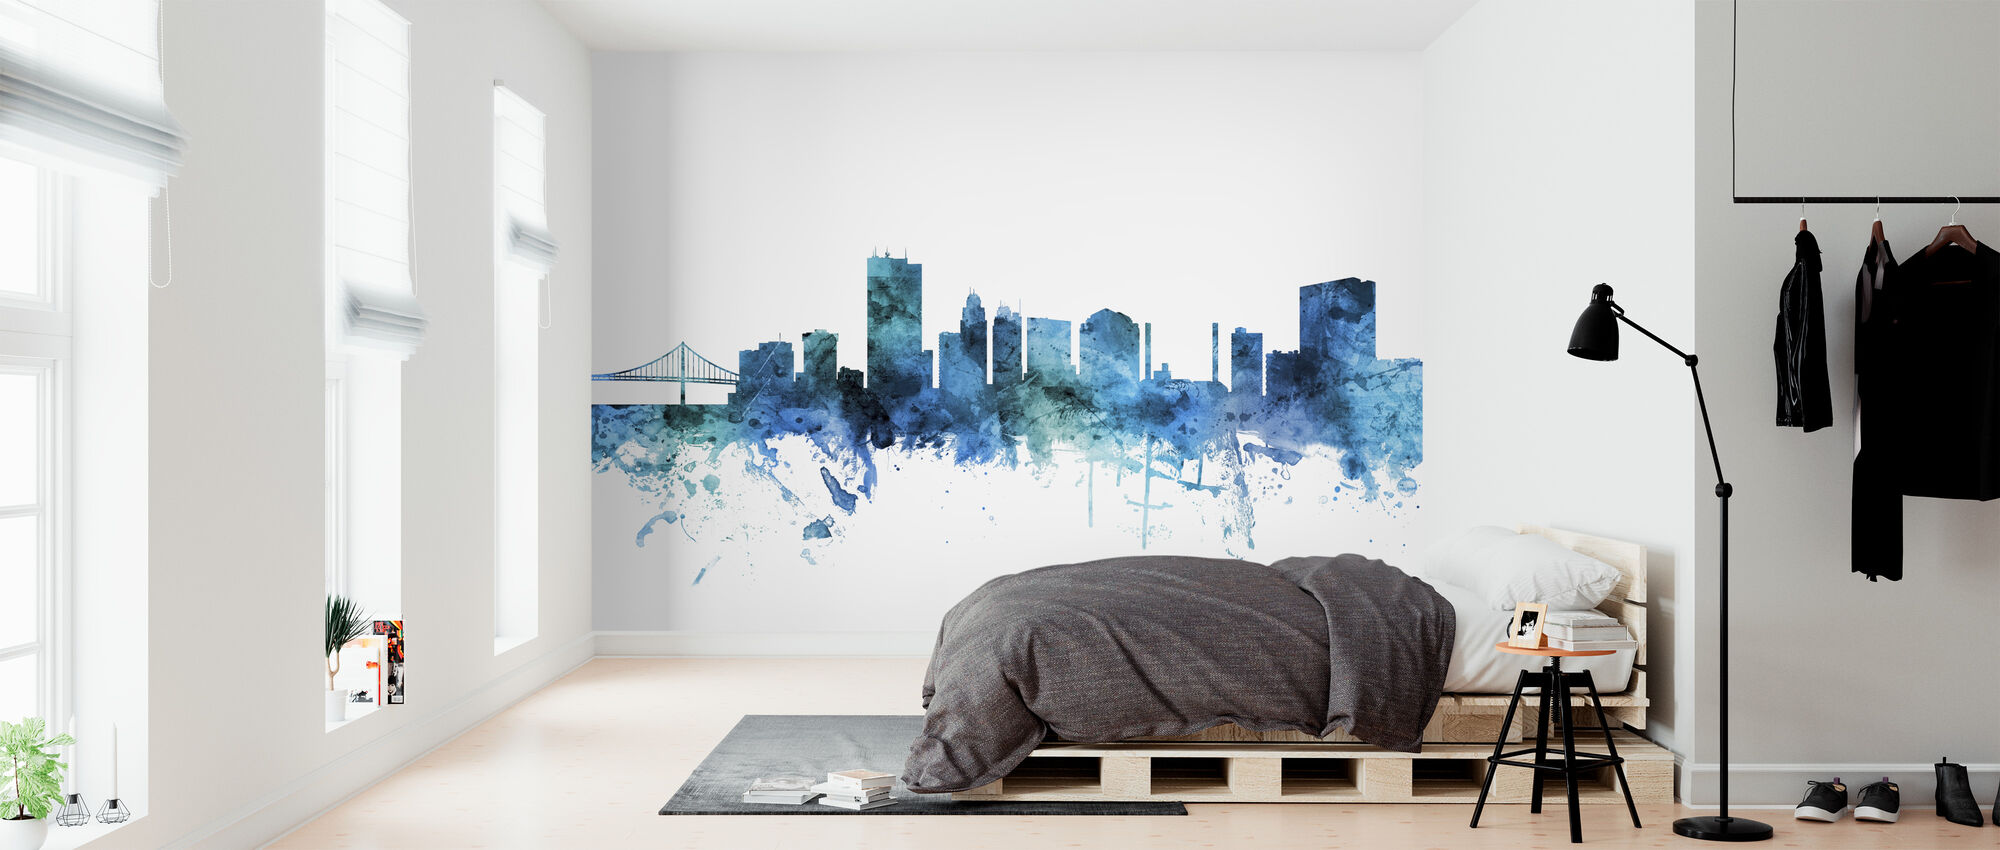 Toledo Ohio Skyline - Wallpaper - Bedroom